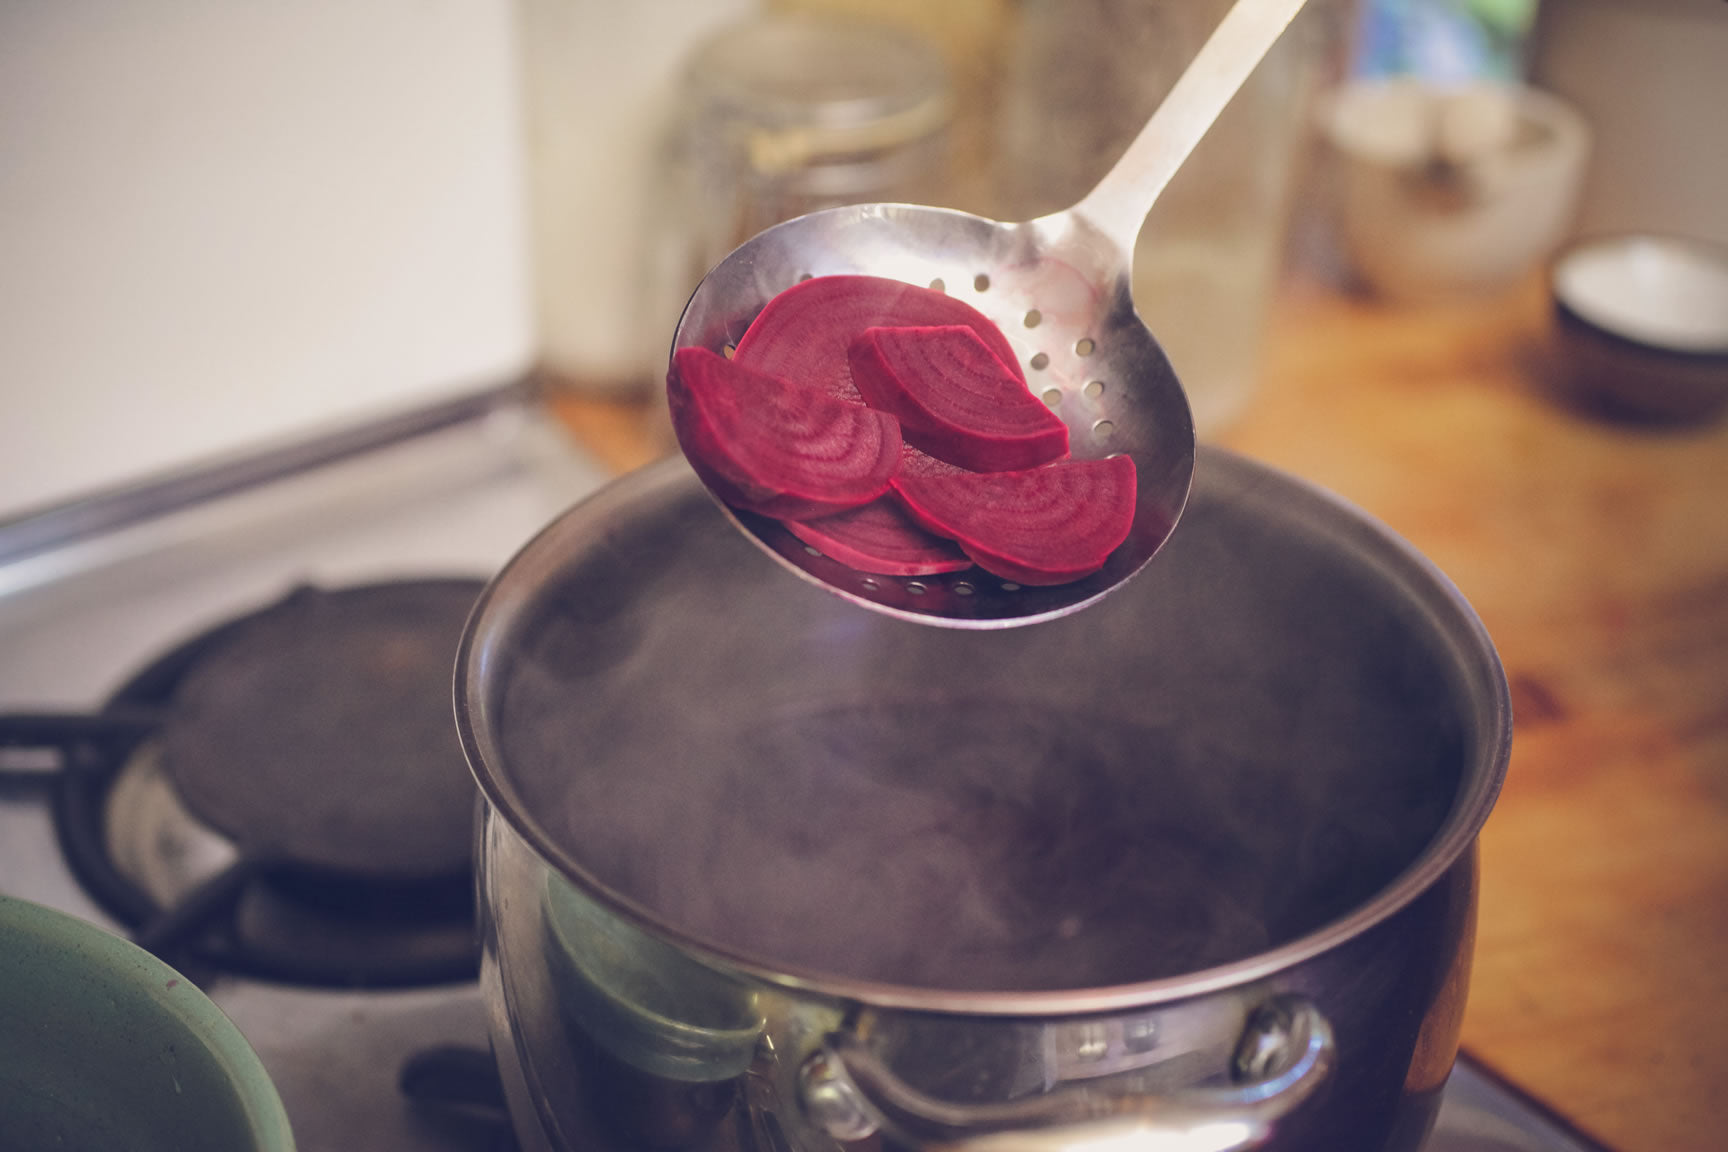 remove beets from liquid